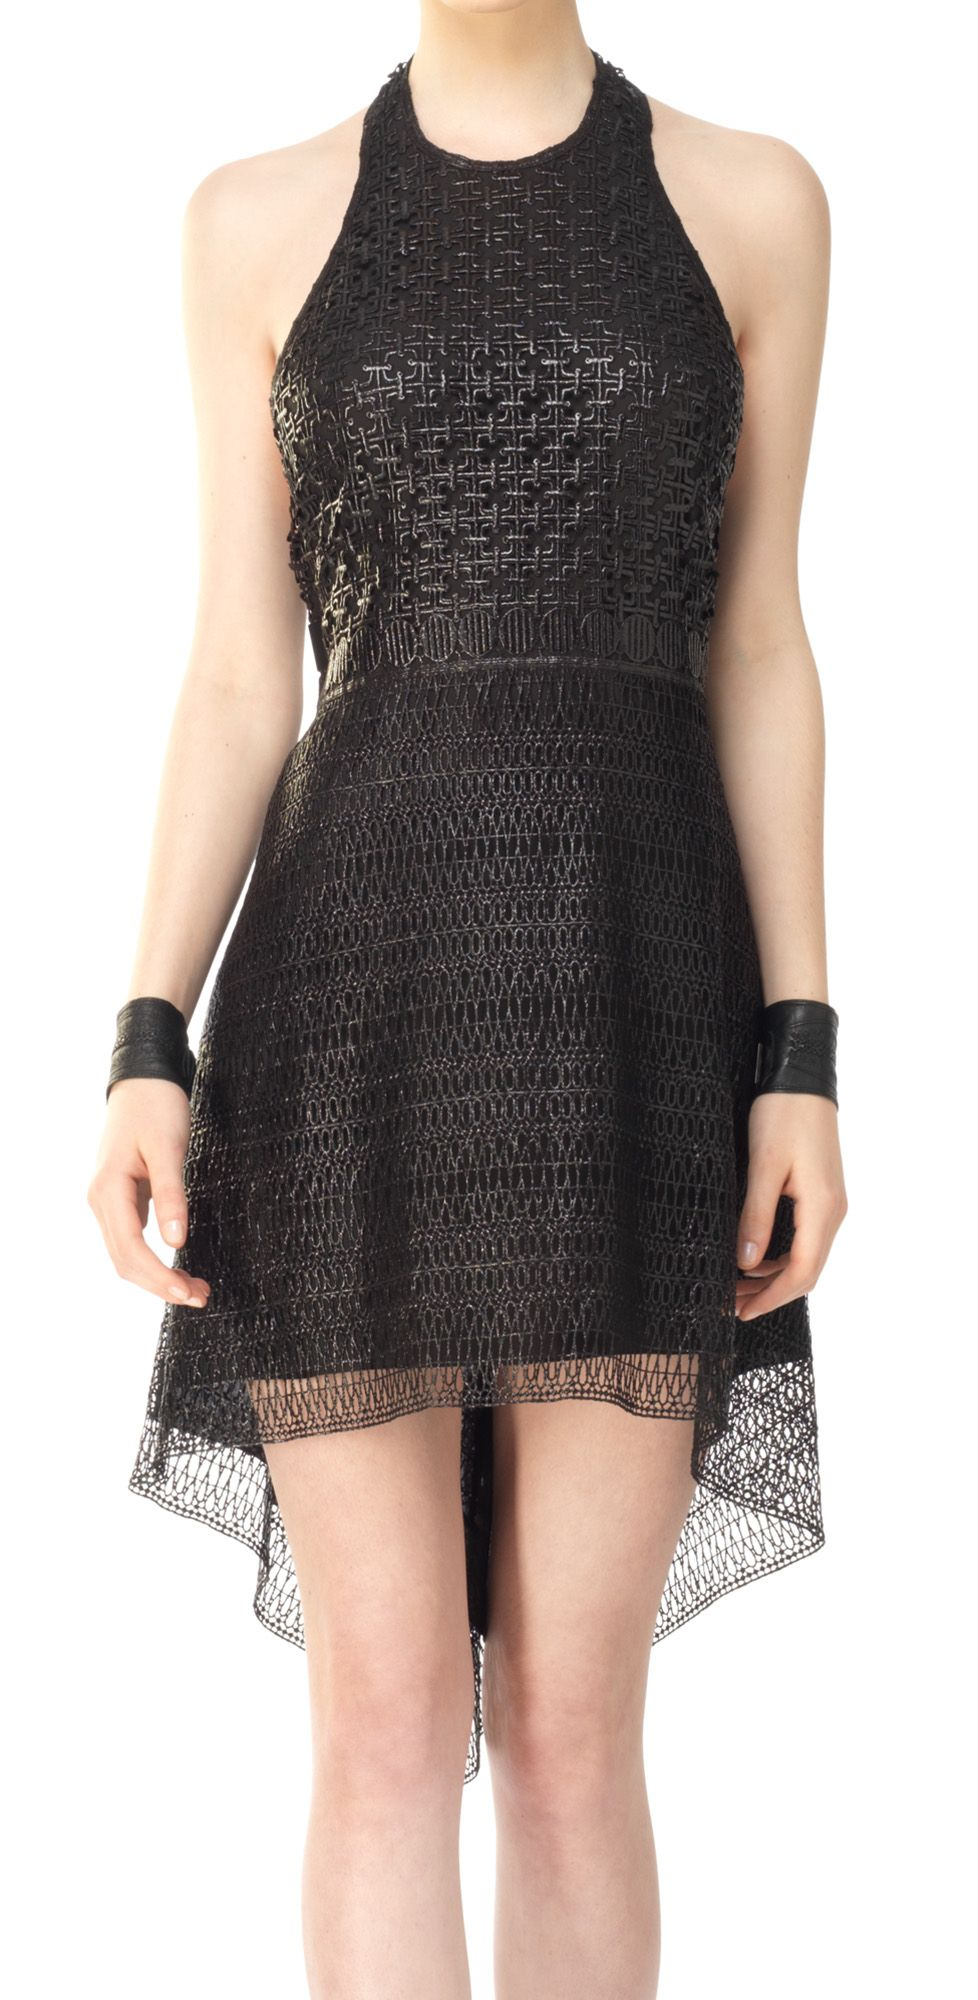 Rubberized lace dress yuall and i want the cuffs too iud wear